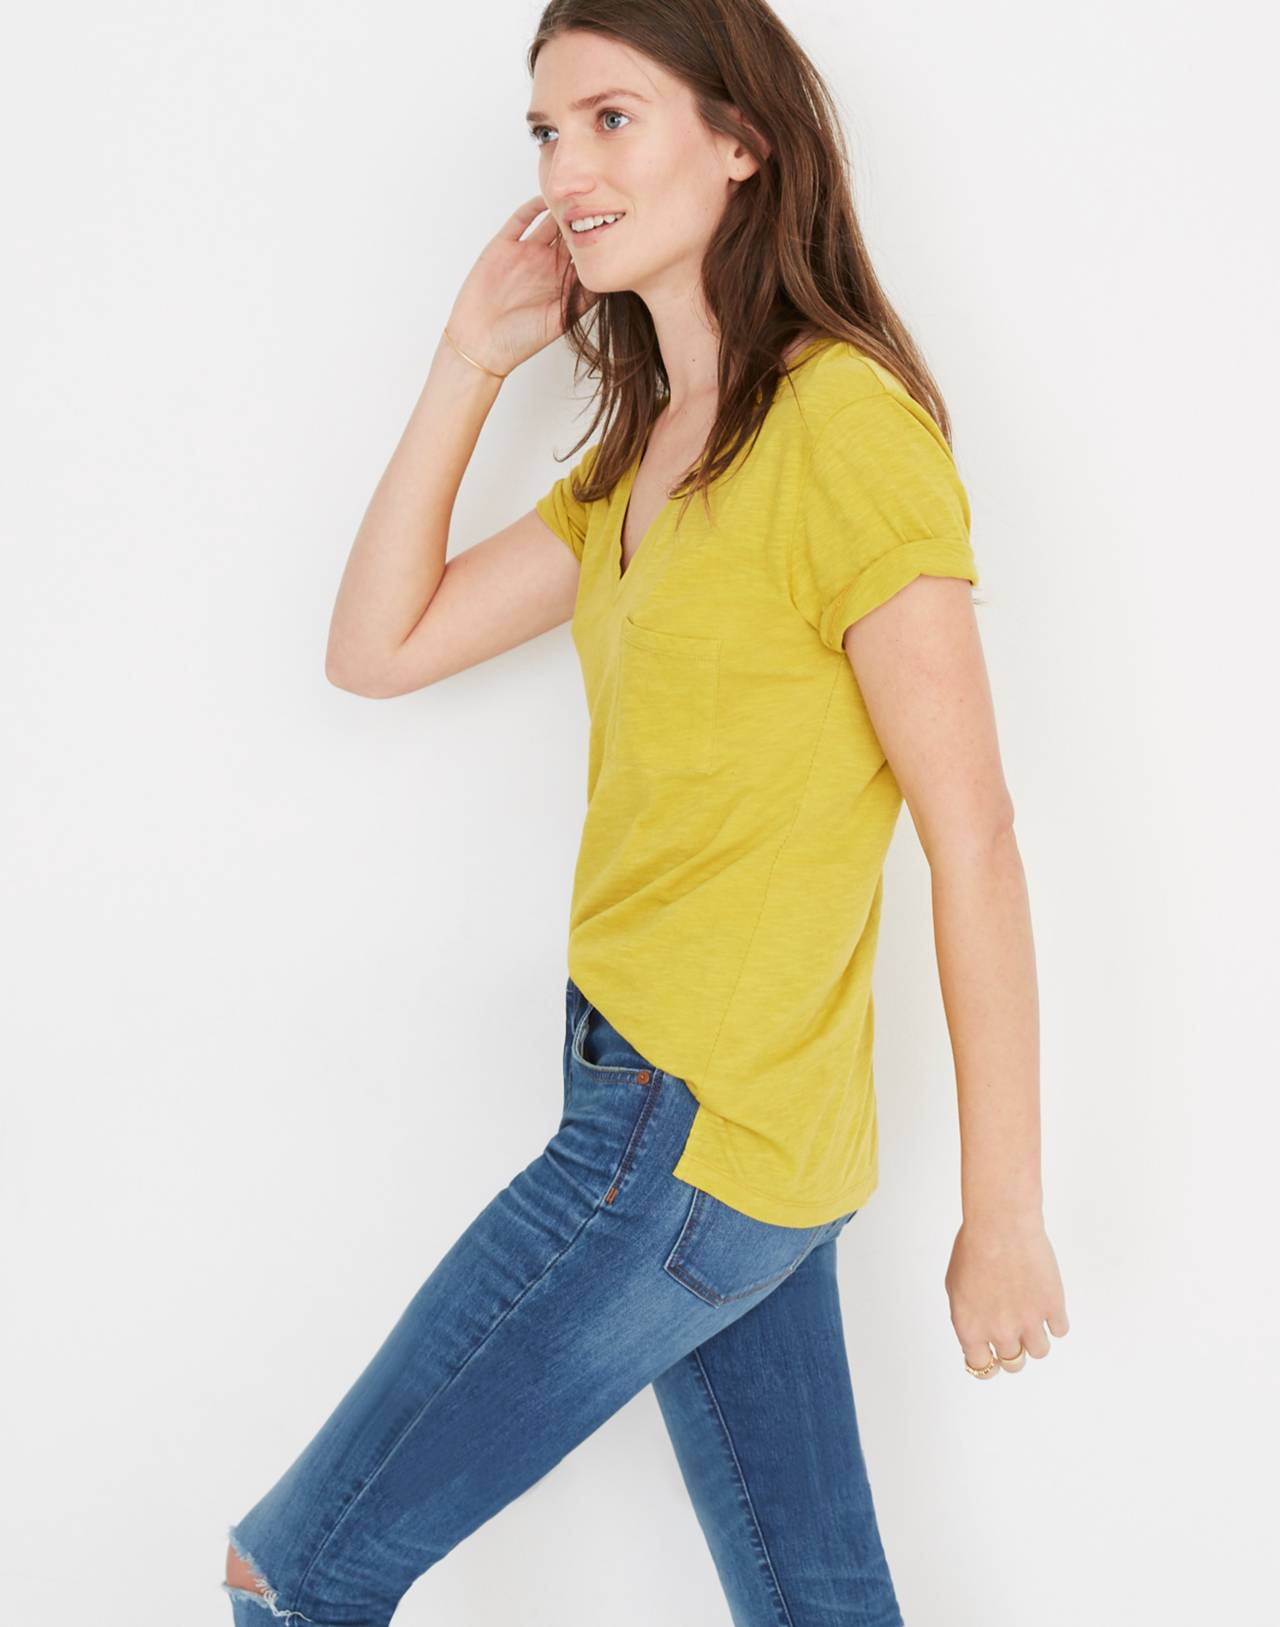 Whisper Cotton V-Neck Pocket Tee in golden meadow image 2